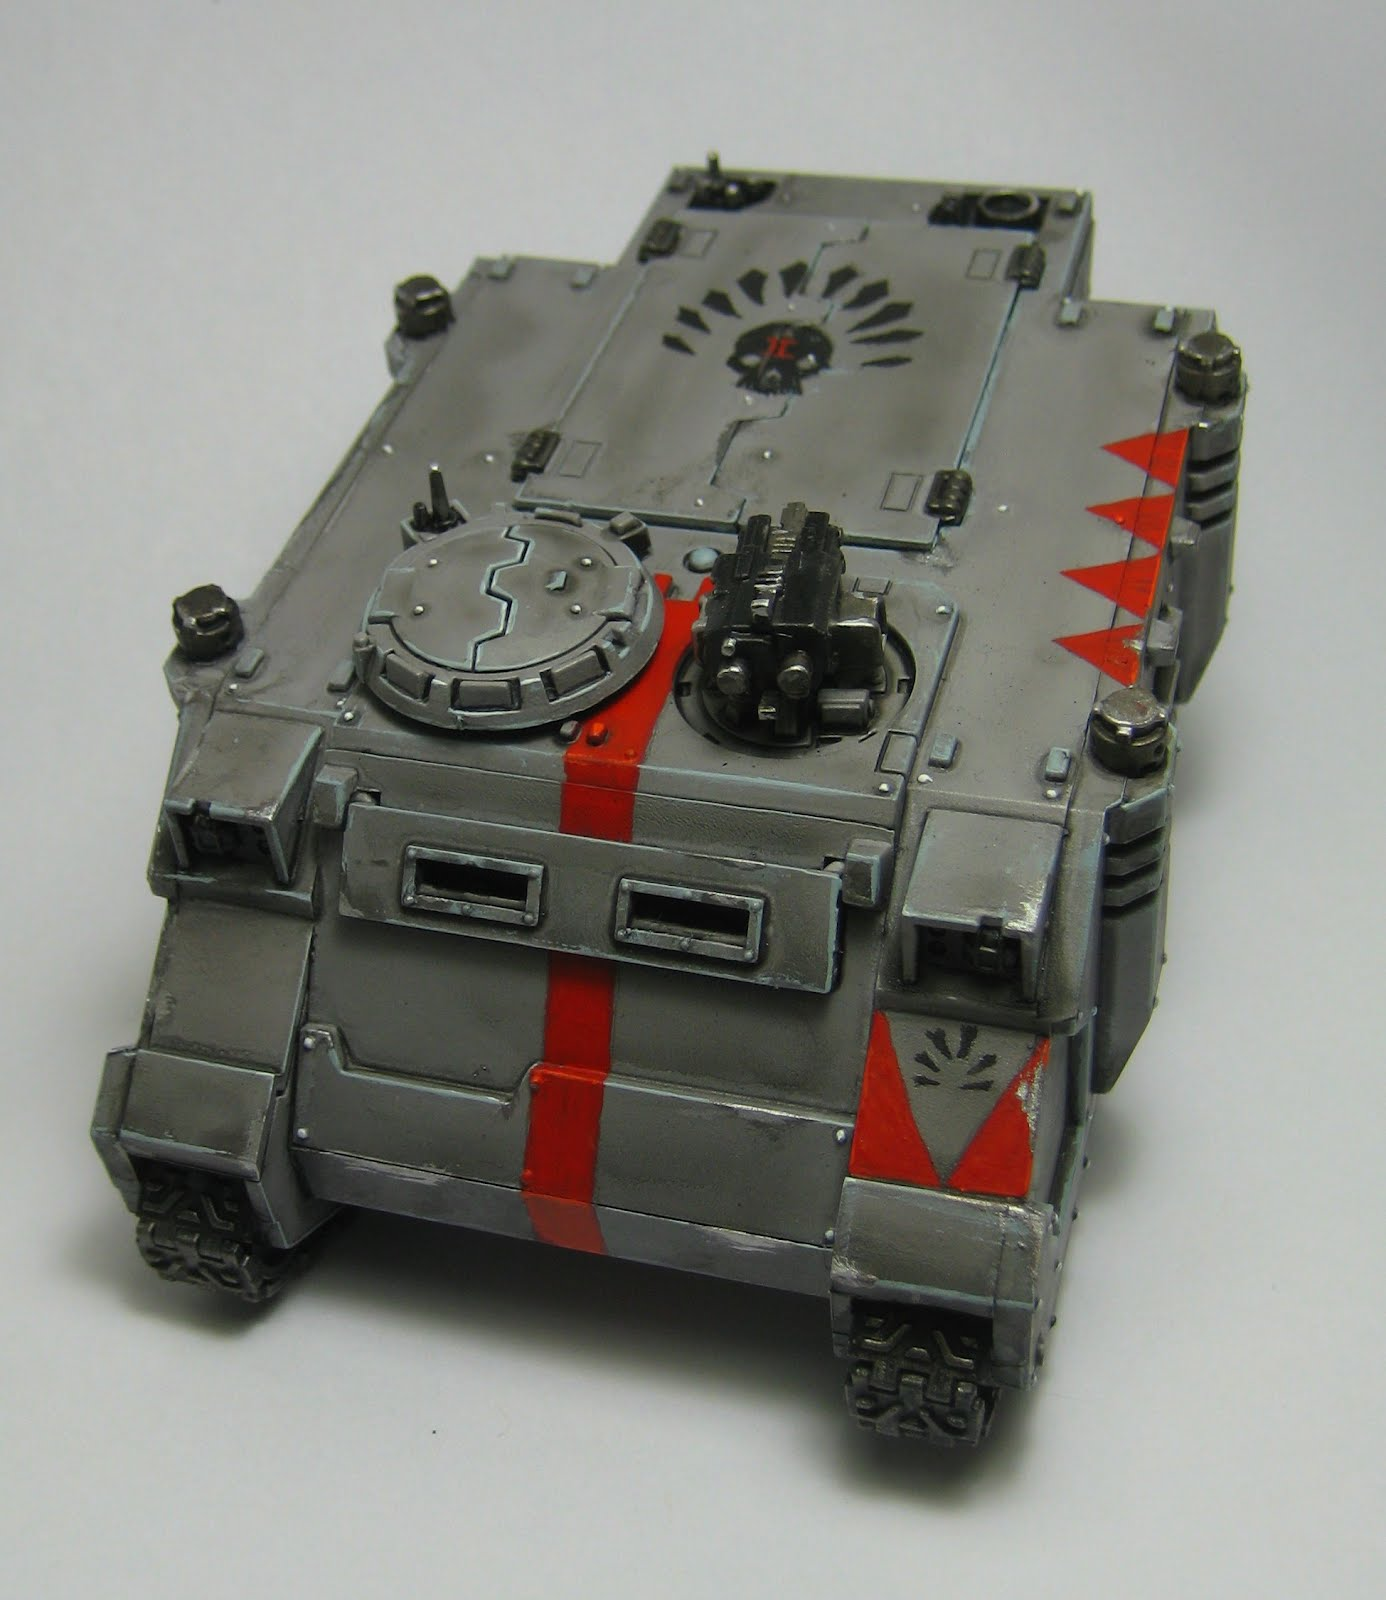 I didnt get a shot of the side door with the shark emblem but the symbol on the top hatch is copied from the forge world space sharks transfer sheet